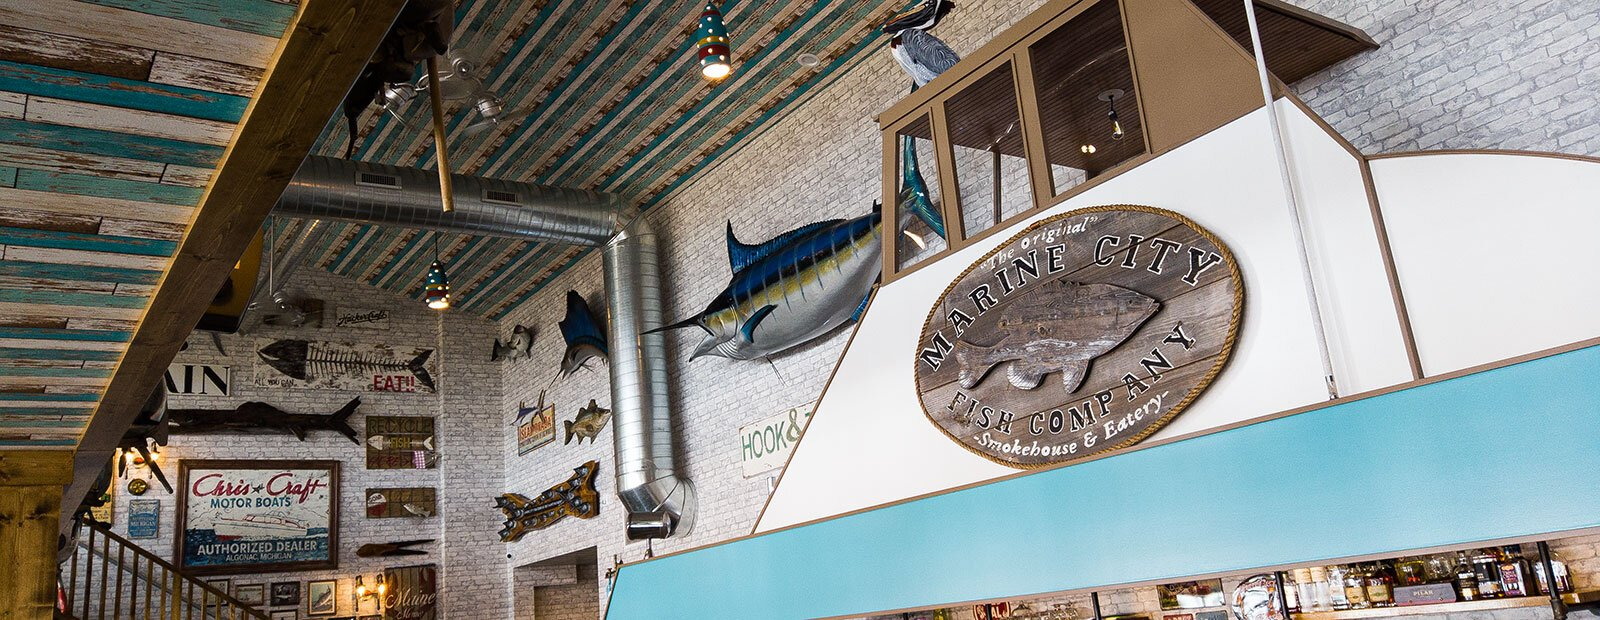 Marine City FIsh Co. recently finished a huge expansion project.